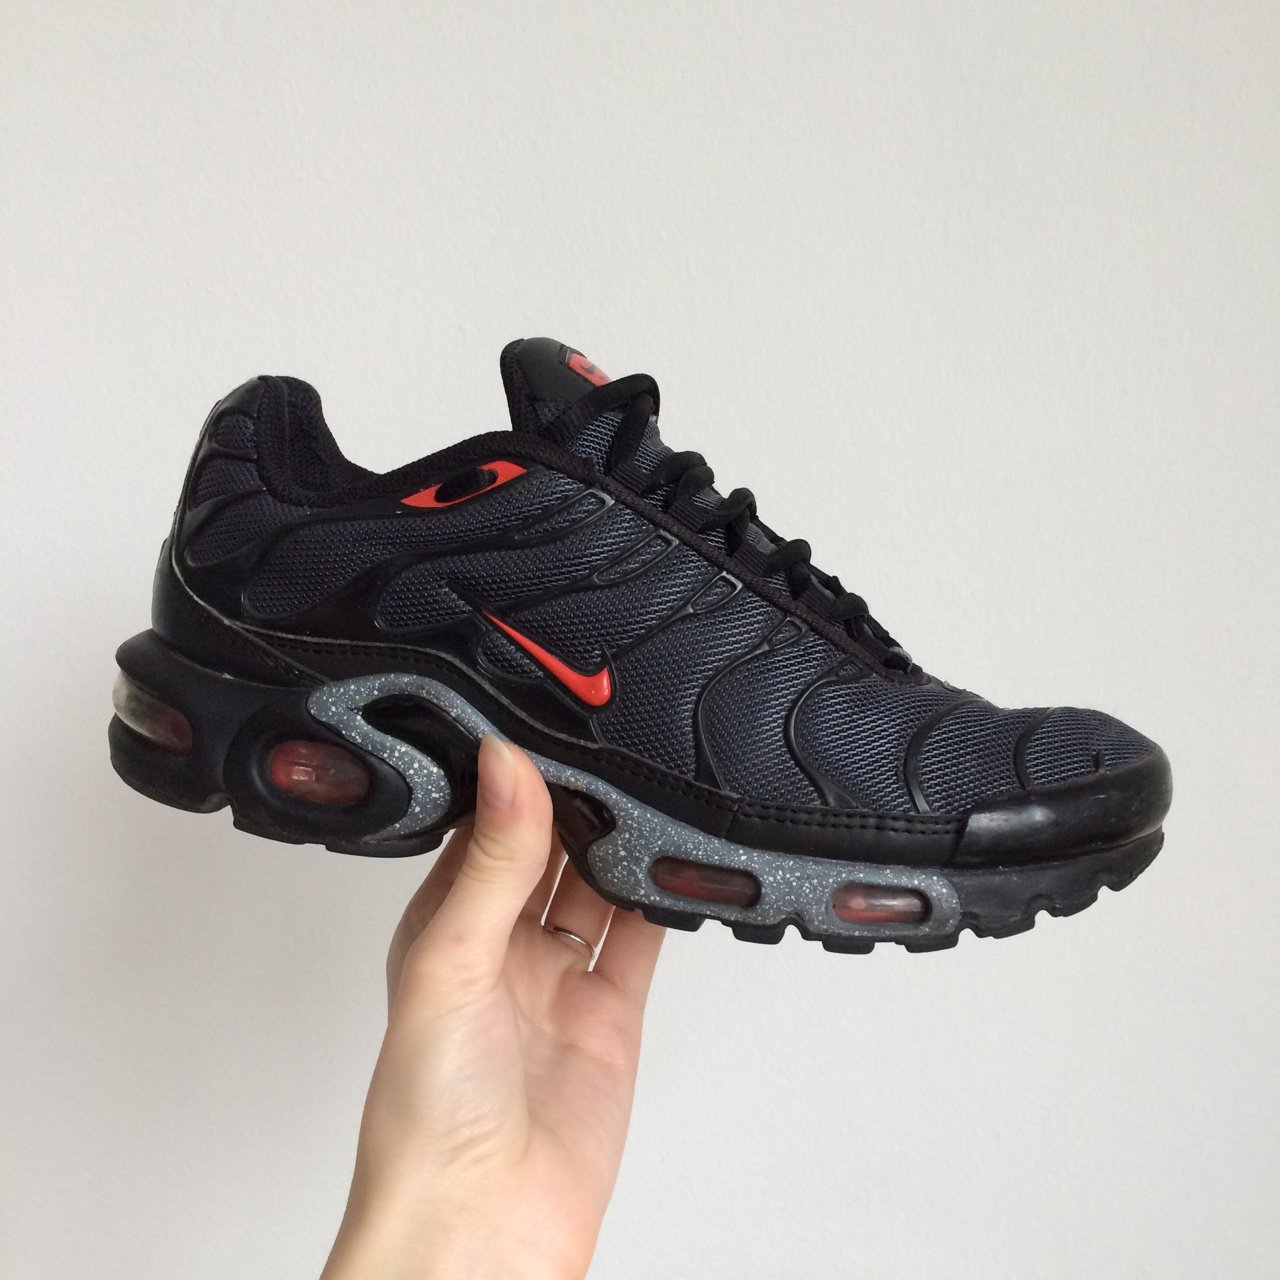 a278ac5f1f Black red and silver Nike Air Max Airmax TN TNs Tuned 1 size - Depop